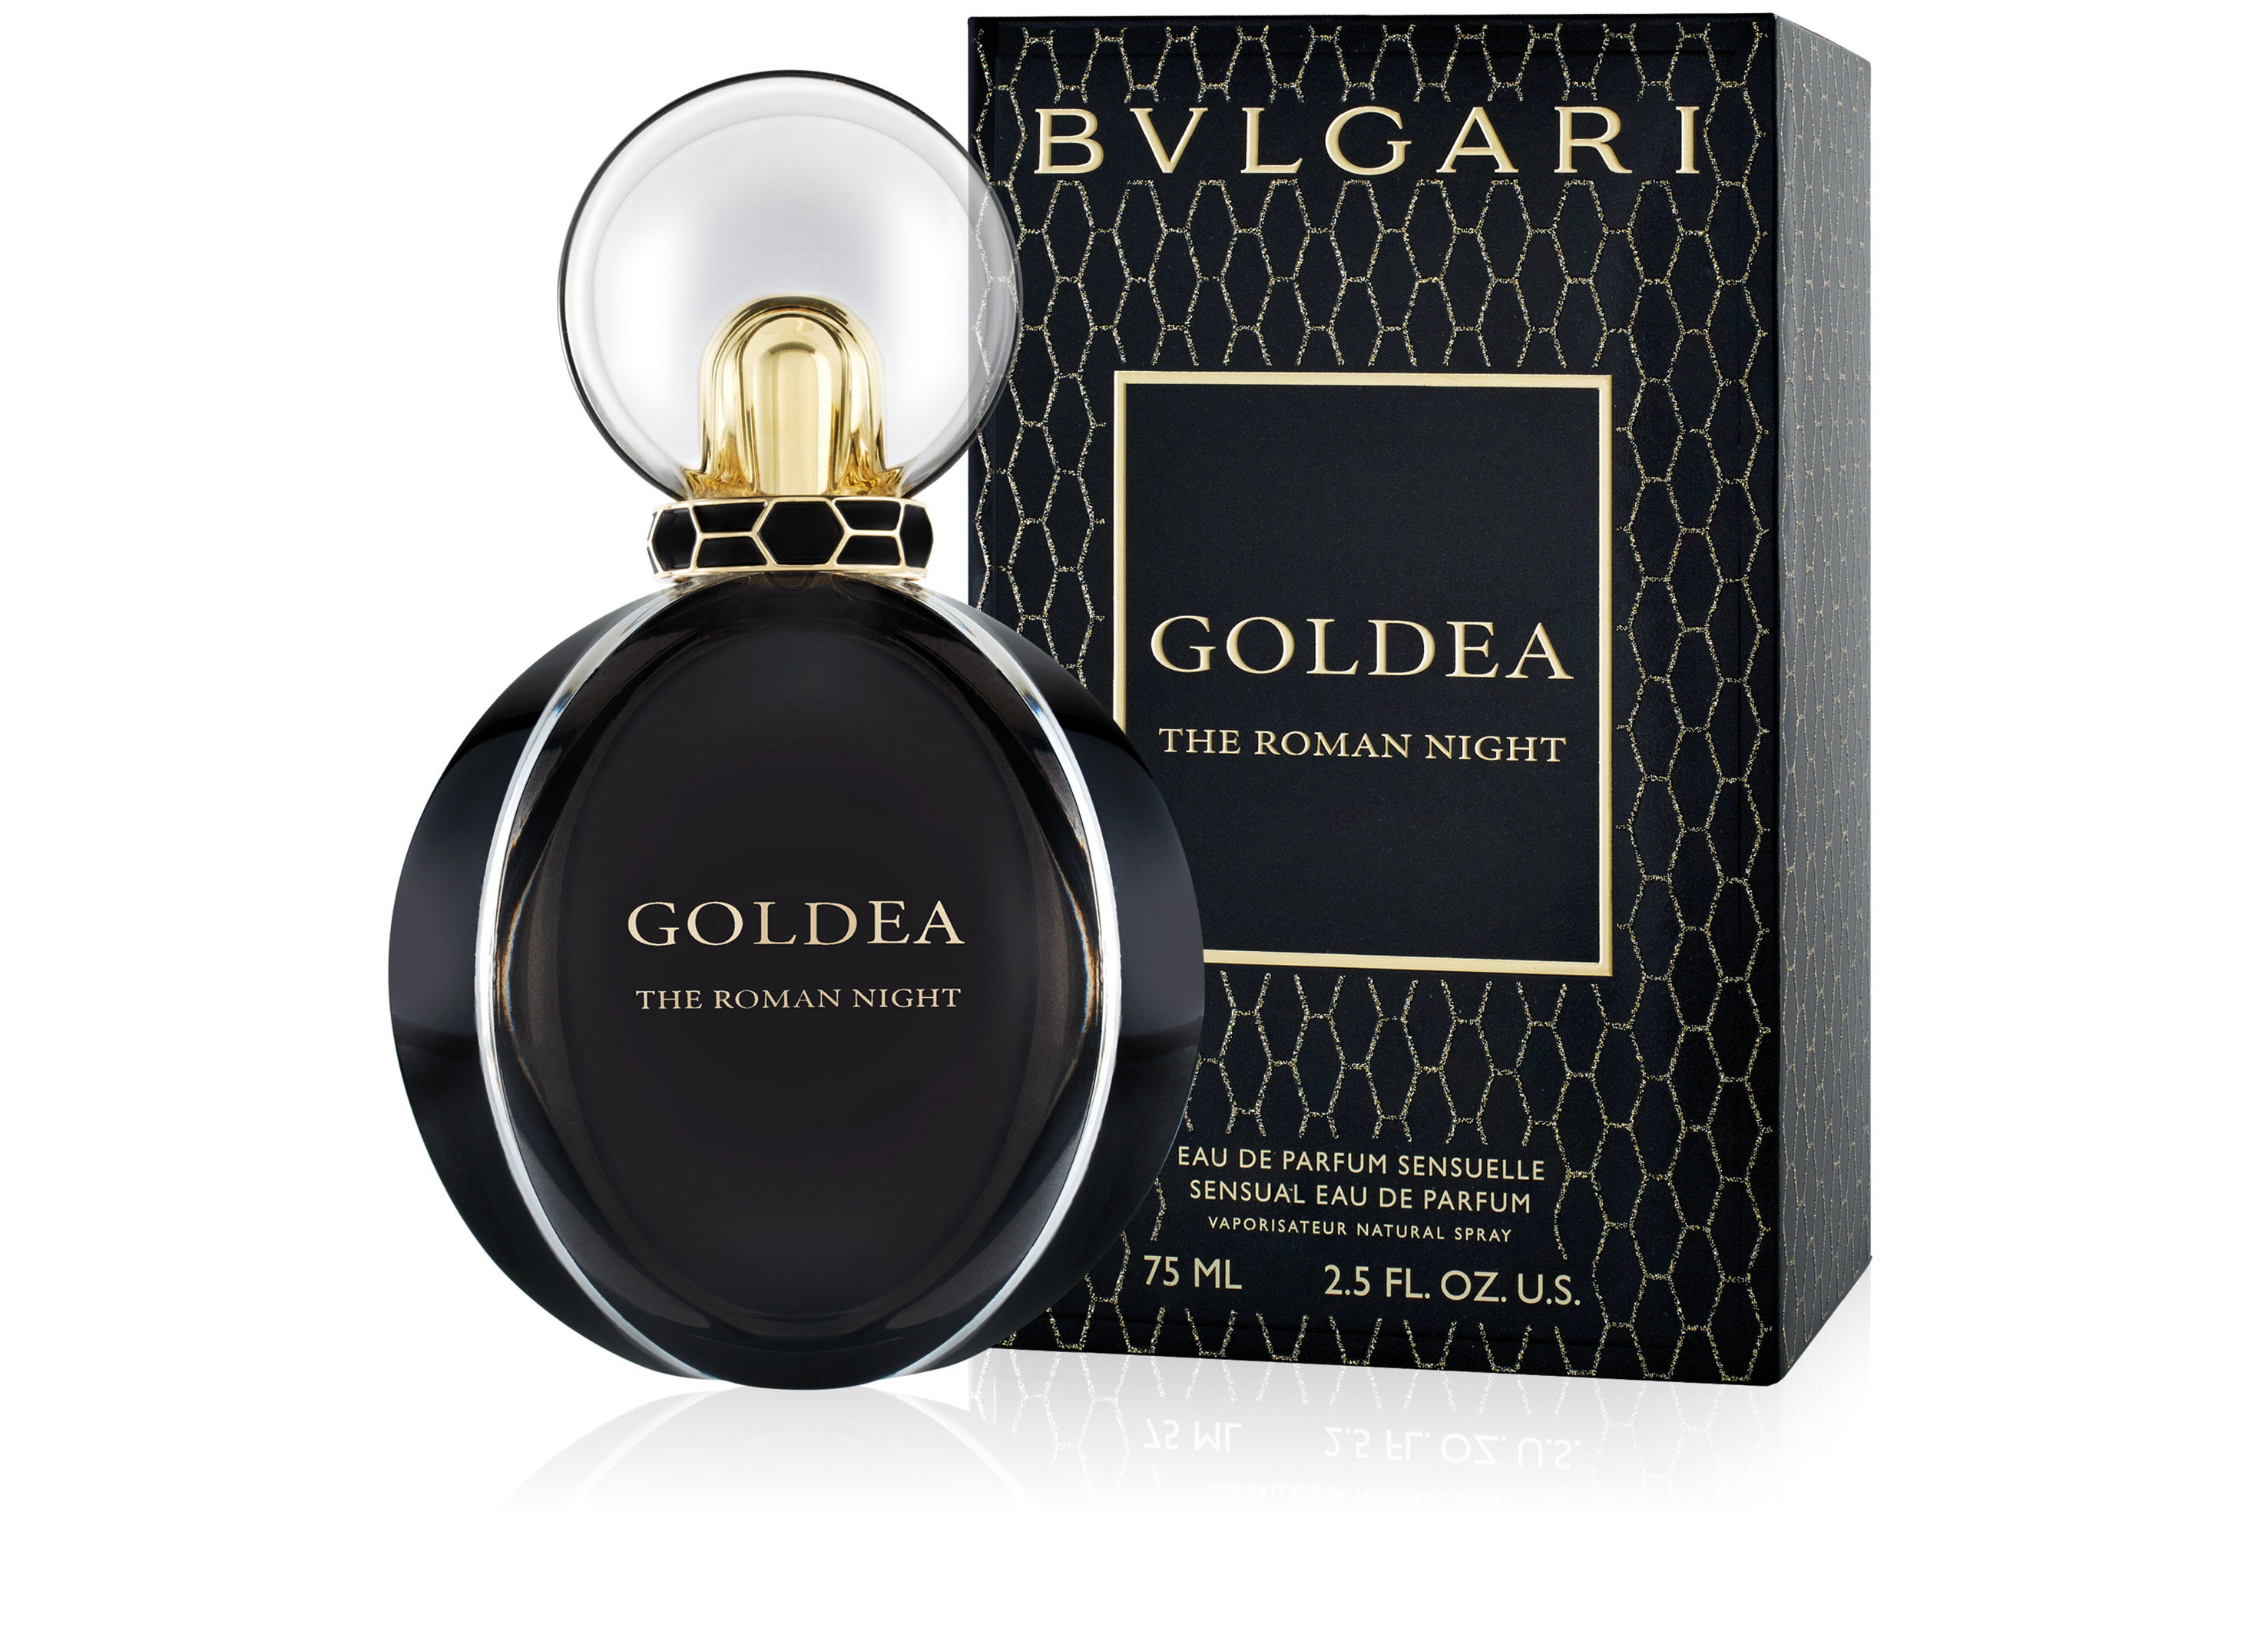 Goldea The Roman Night 75 ml with box